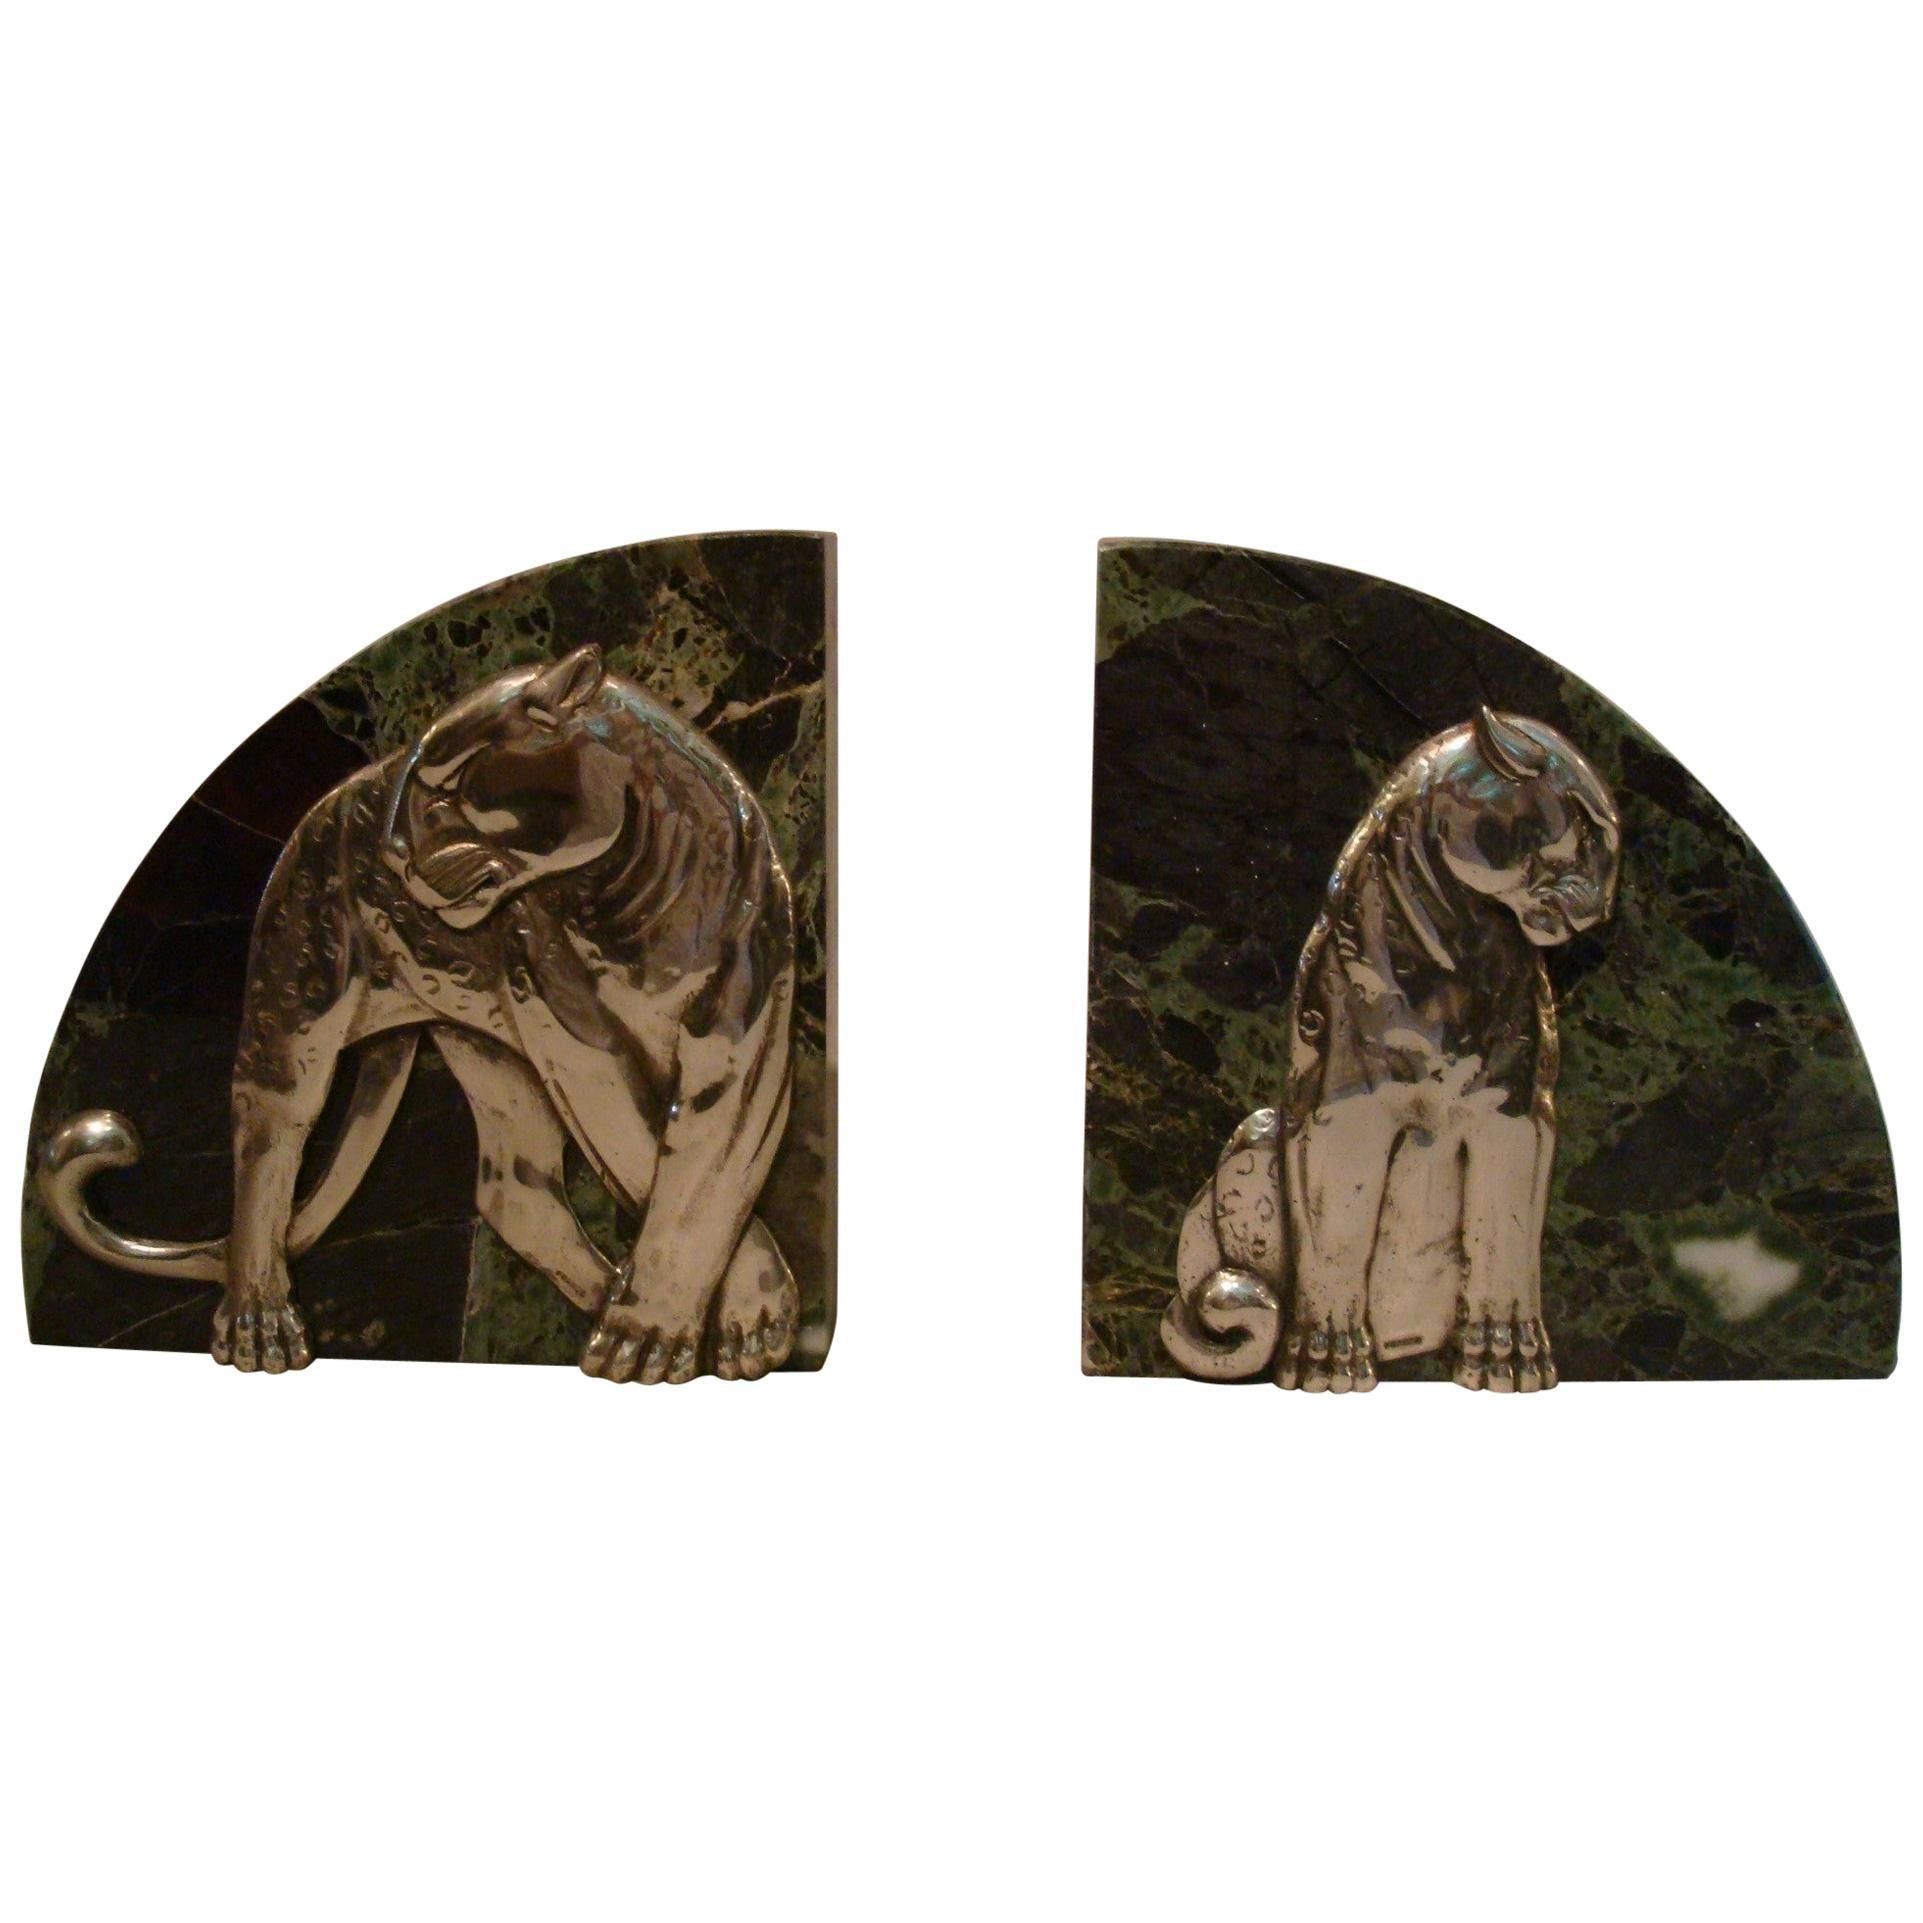 Art Deco Pair of Panther Bookends, Silvered Bronze and Marble - France, 1920s